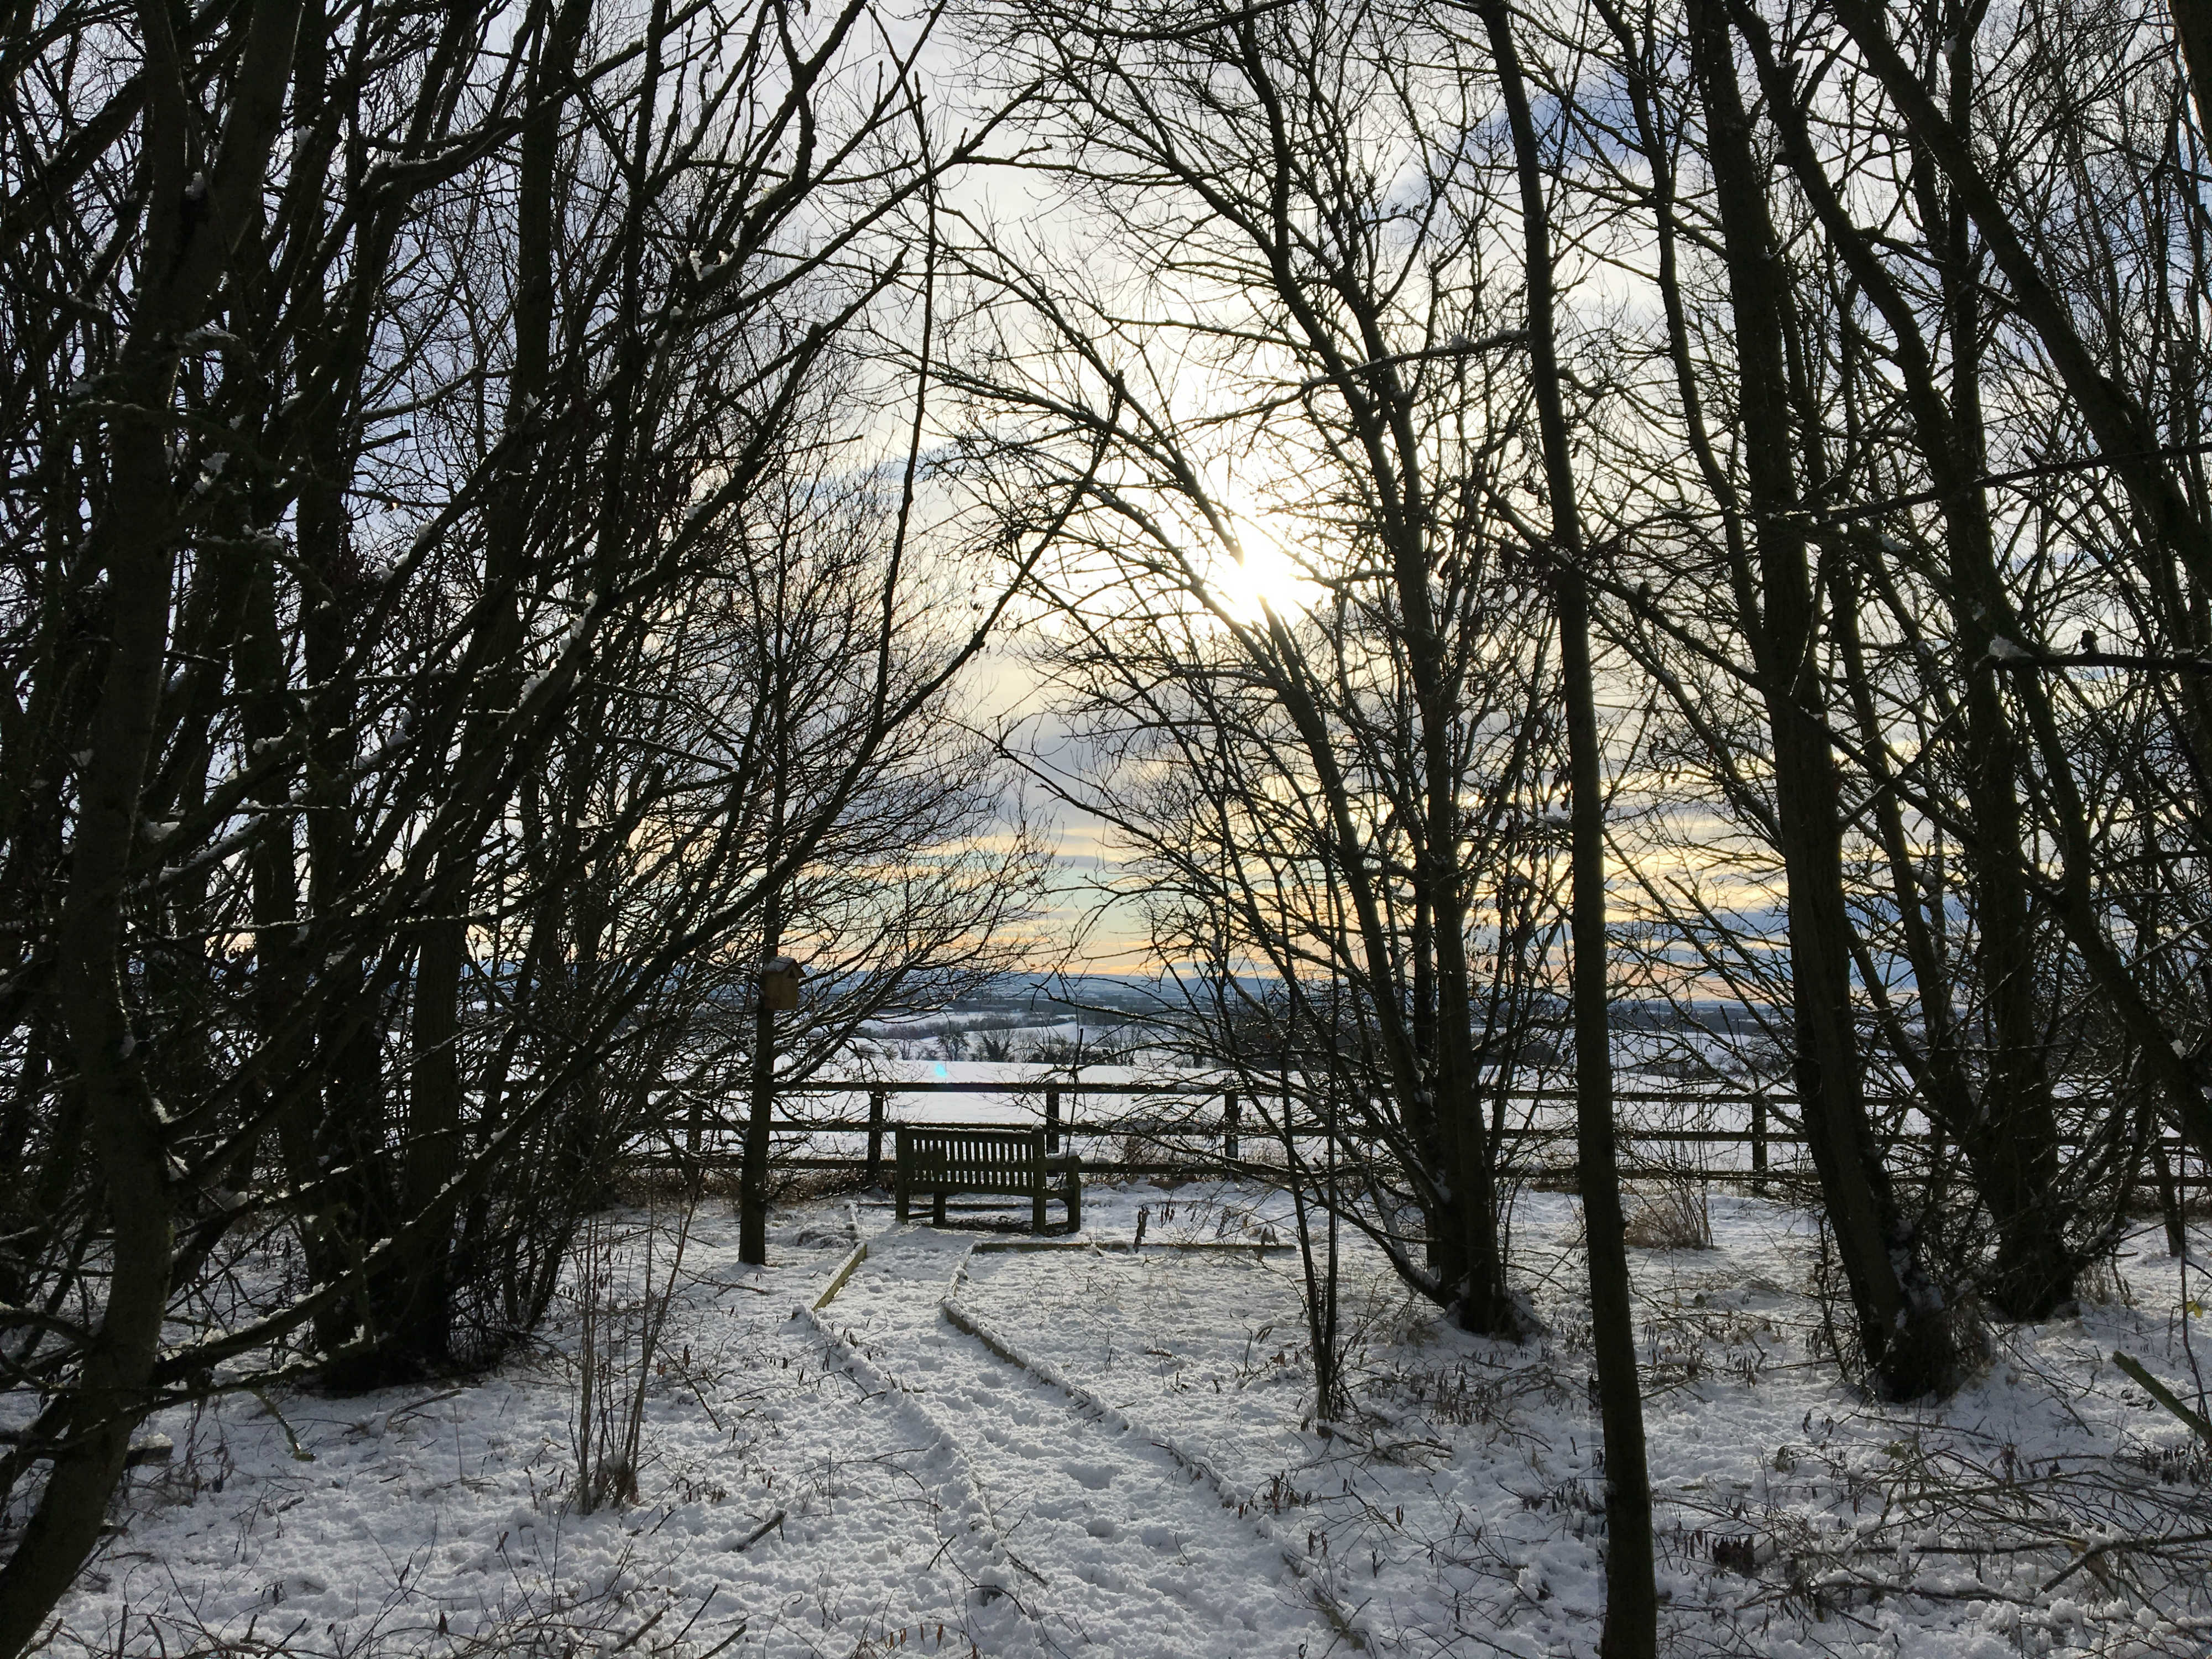 A view of a bench in the woodland in the snow